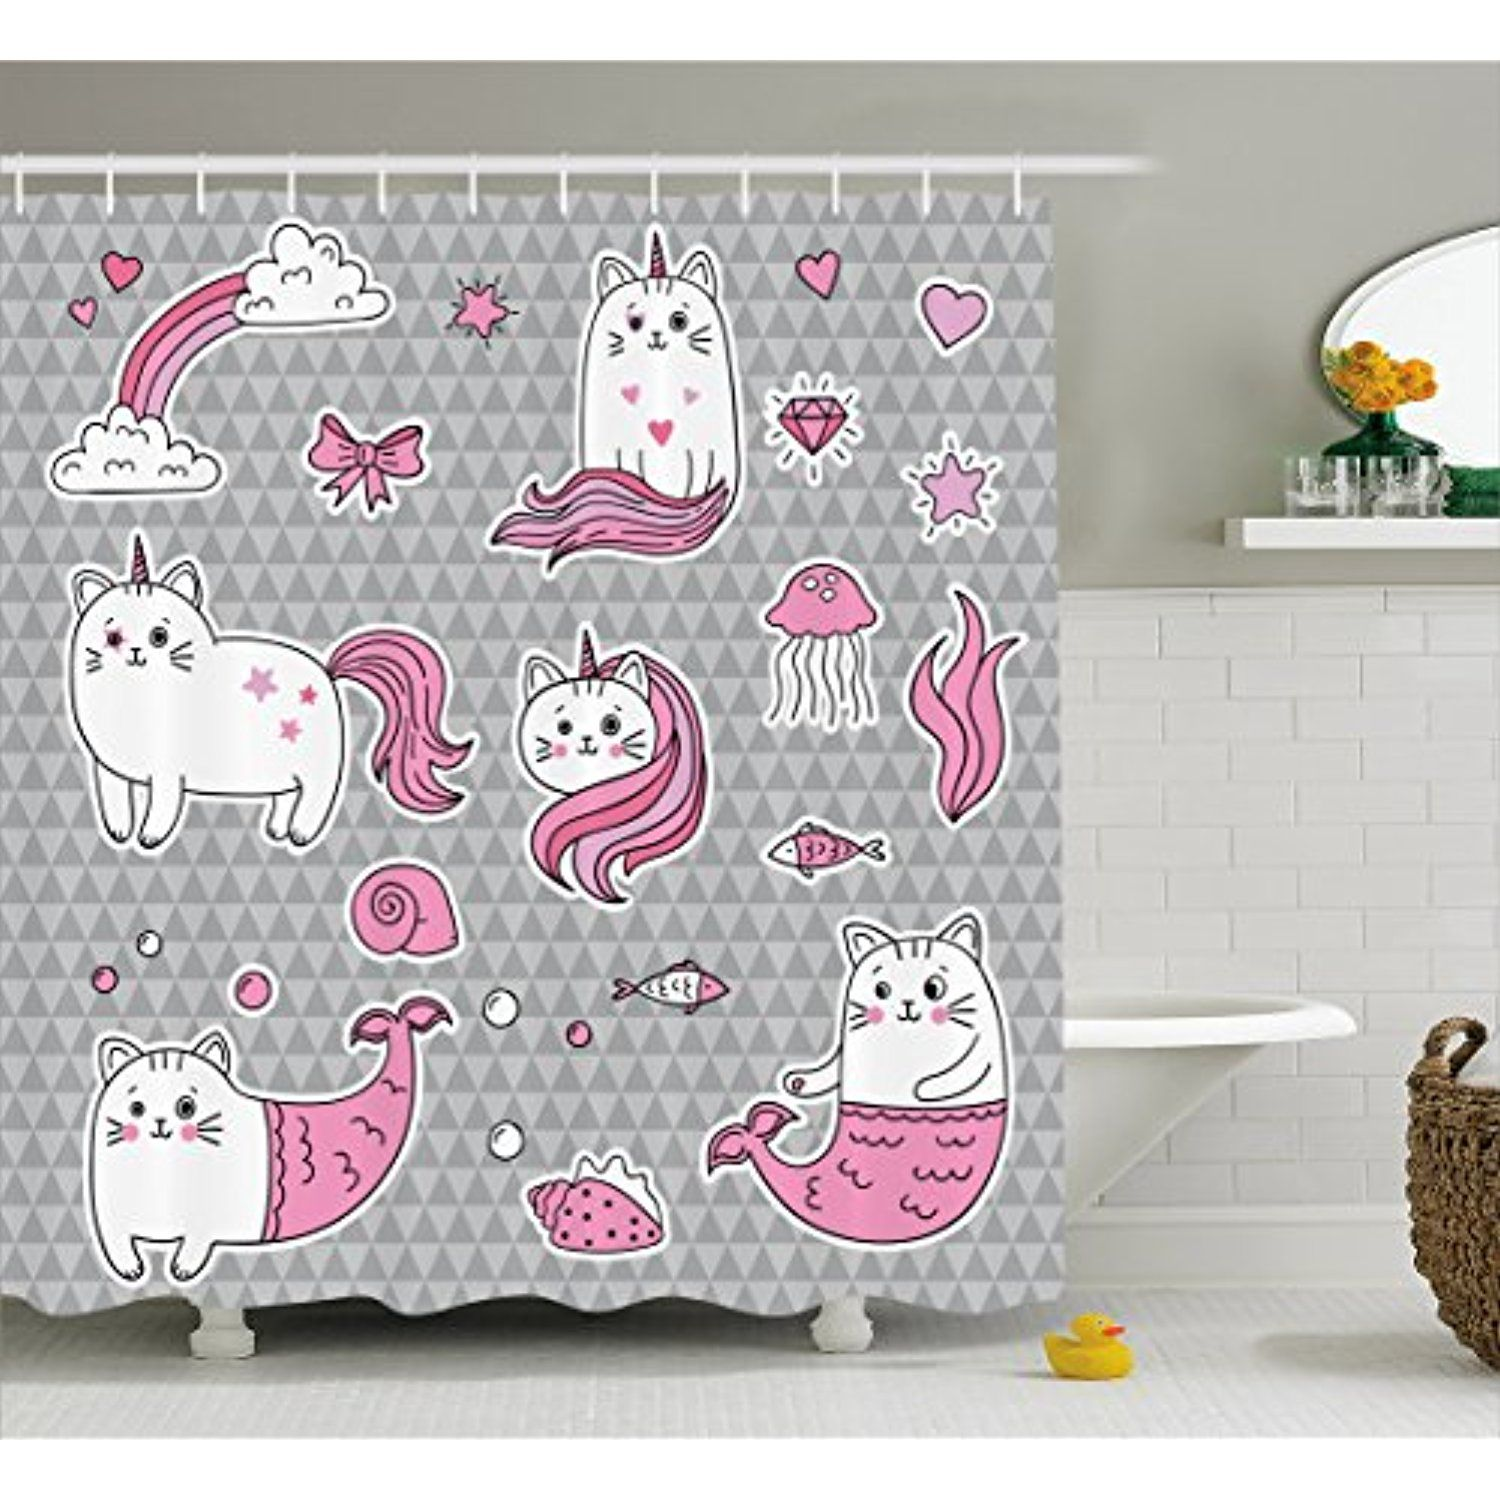 Unicorn Cat Shower Curtain By Ambesonne Cute Cat Unicorn And Mermaid Fishes Bubbles Hearts Underwater Theme F With Images Bathroom Decor Sets Cat Shower Curtain Curtains